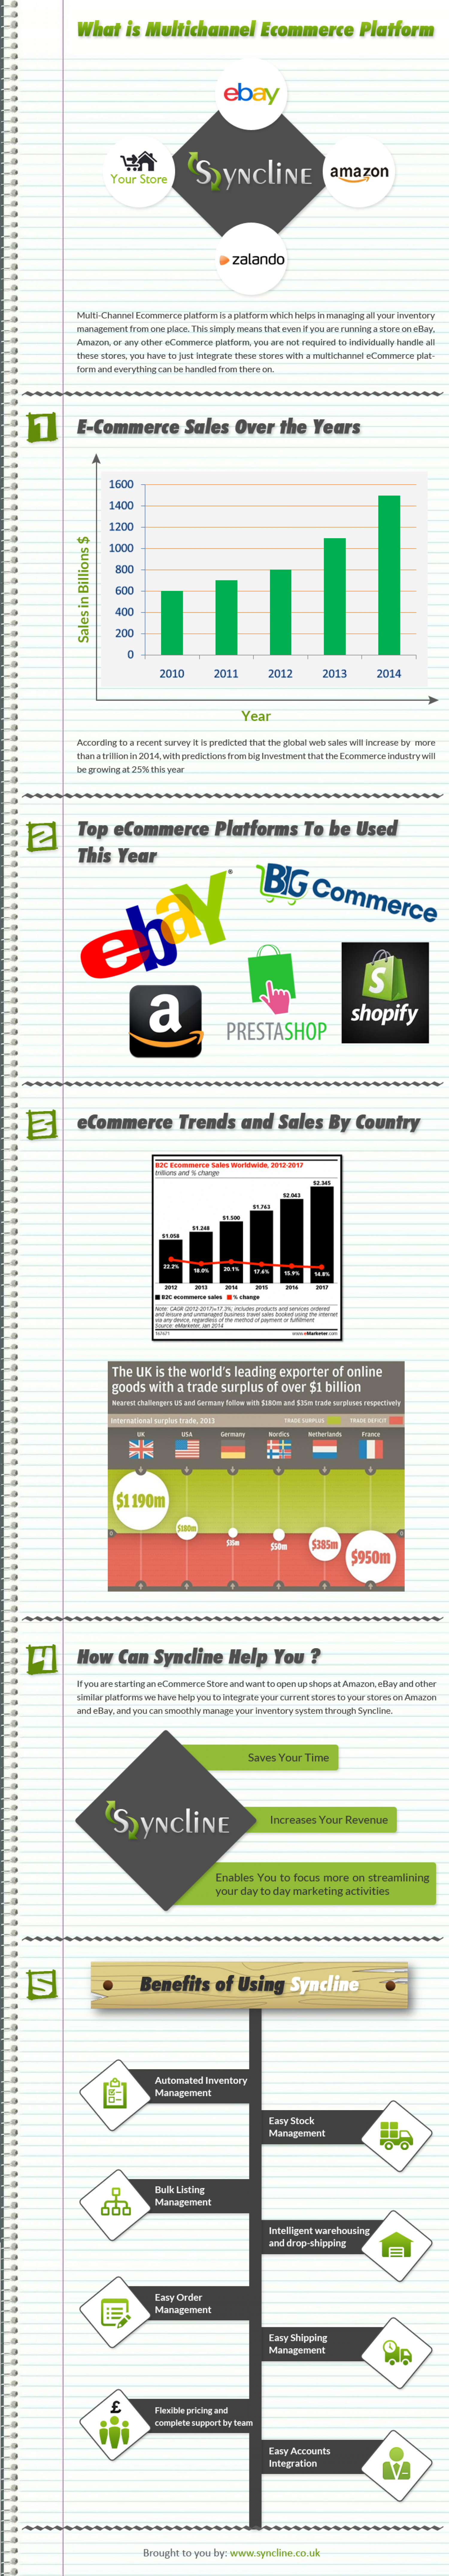 Multi Channel Ecommerce Solution: Introduction, Advantages and Key Stats Infographic